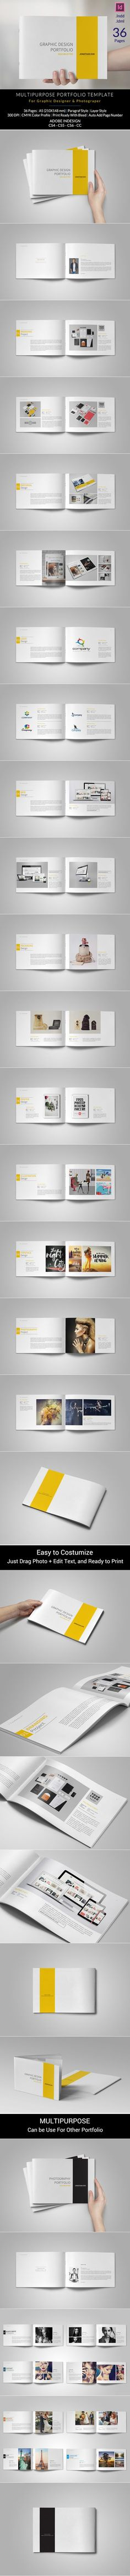 This is 36 page minimal brochure template is for designers working on product/graphic design portfolios interior design catalogues, product catalogues, Portfolio Photography and agency based projects. Just drop in your own images and texts, and it's Ready…